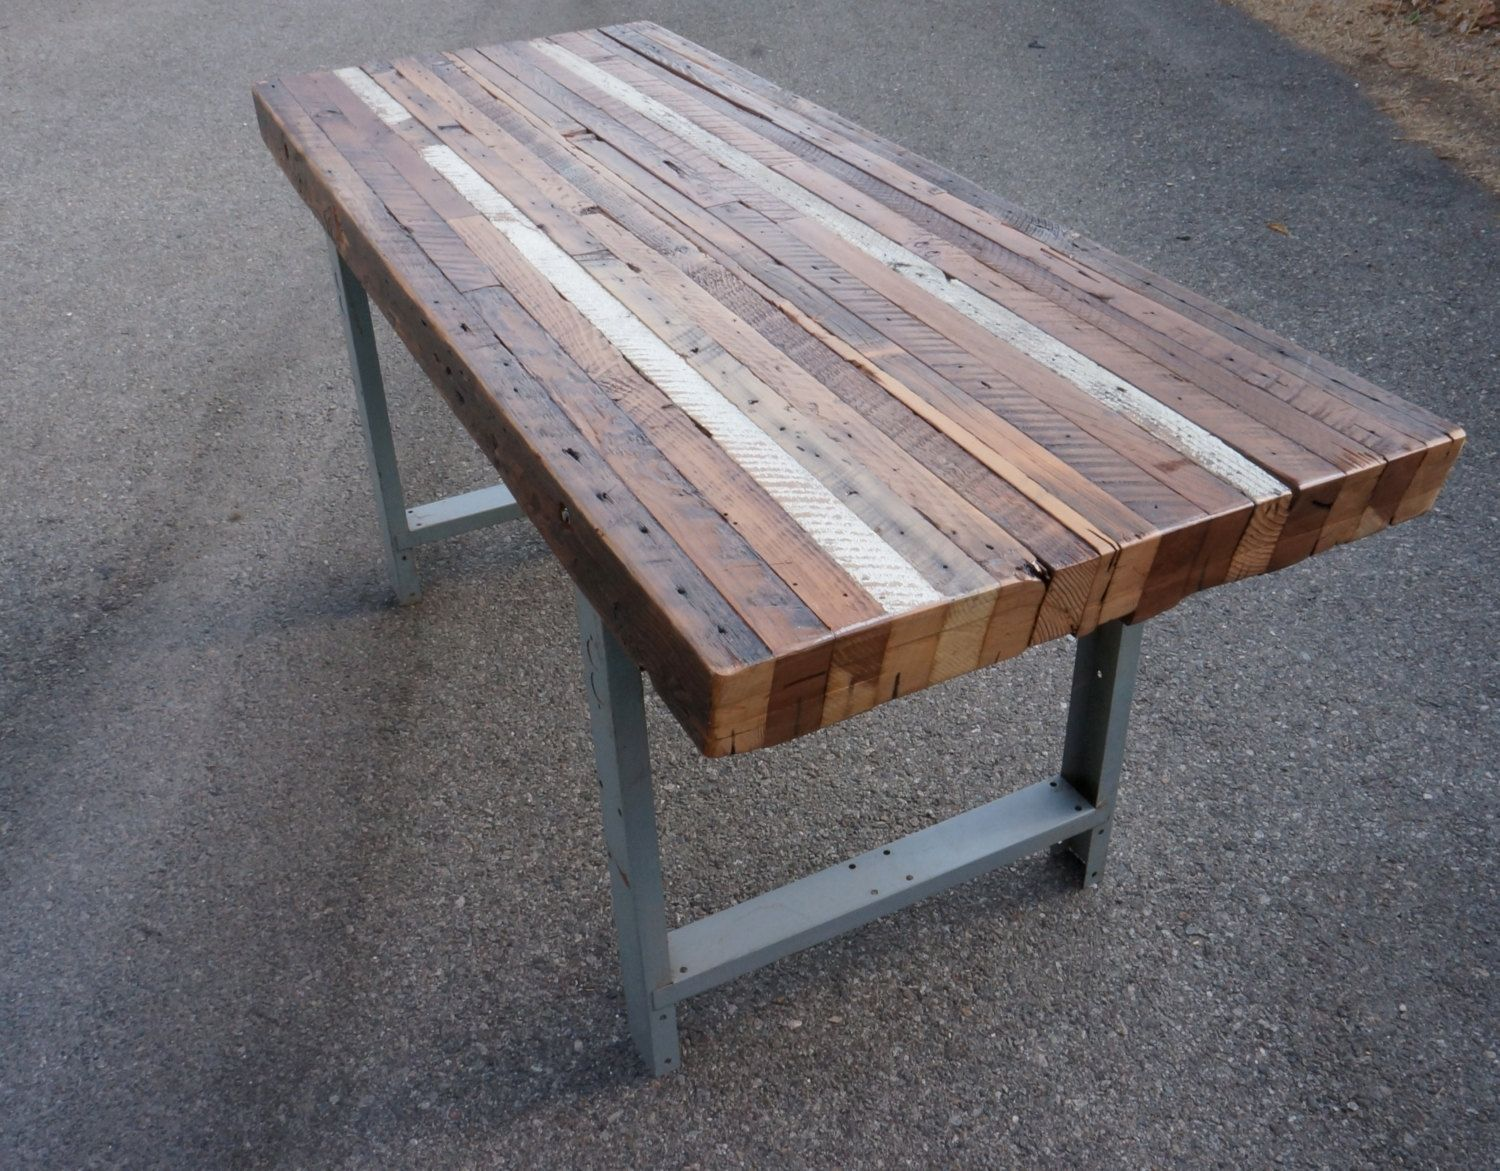 Handmade Custom Outdoor/ Indoor Rustic Industrial Reclaimed Wood Dining Table / Coffee Table by ...